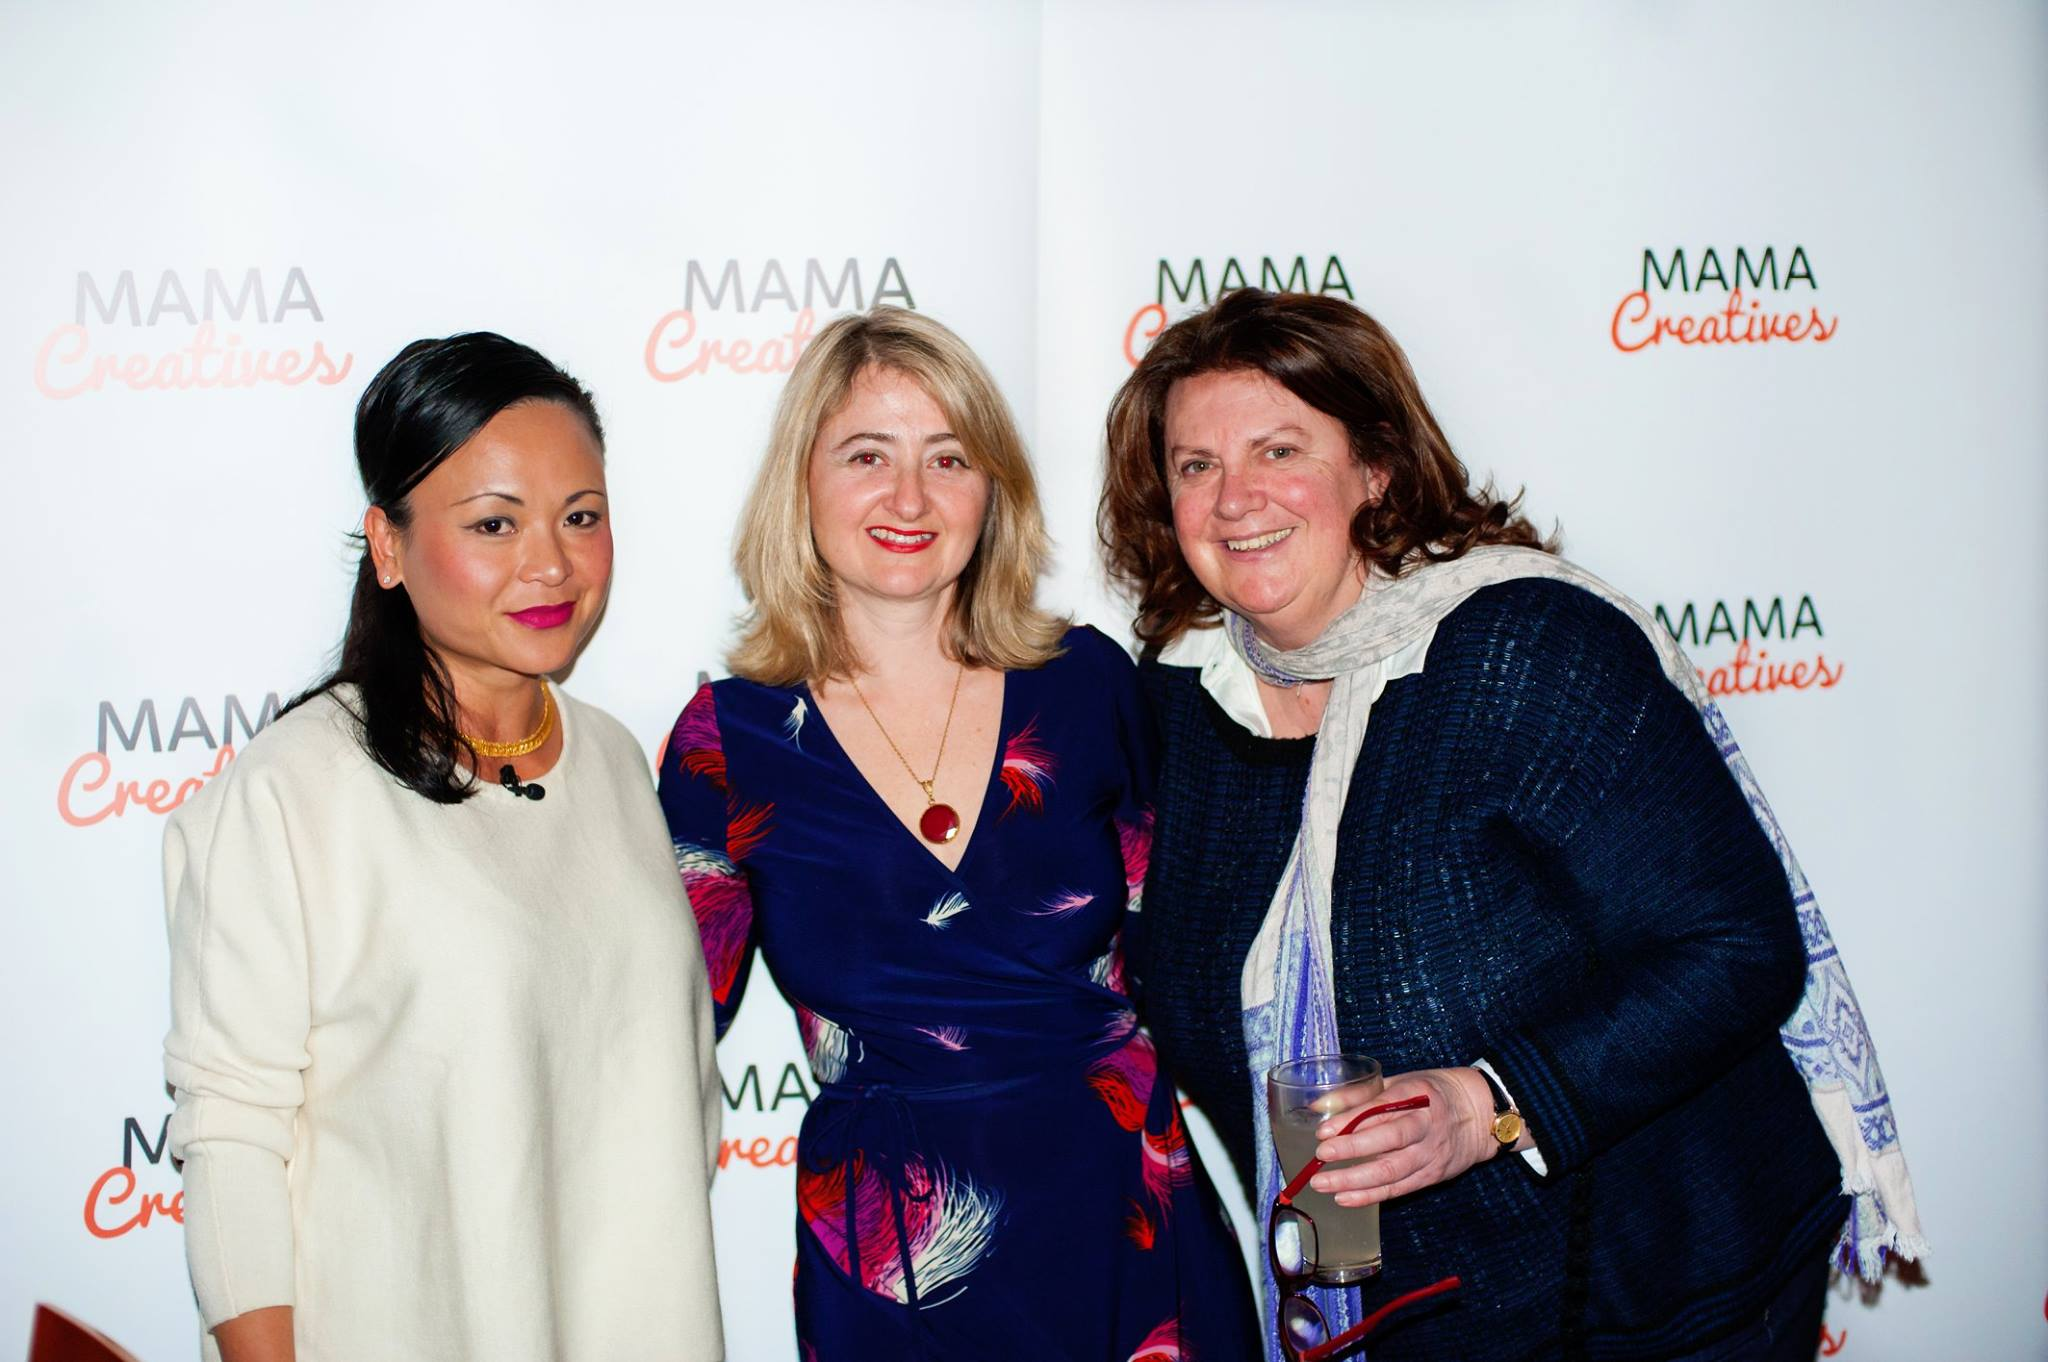 With our fabulous featured guest Pauline Nguyen Speaks, writer, restauranteur, spiritual entrepreneur & mentor, who inspired a romful of creative mamas at our recent Mama Creatives evening talk.